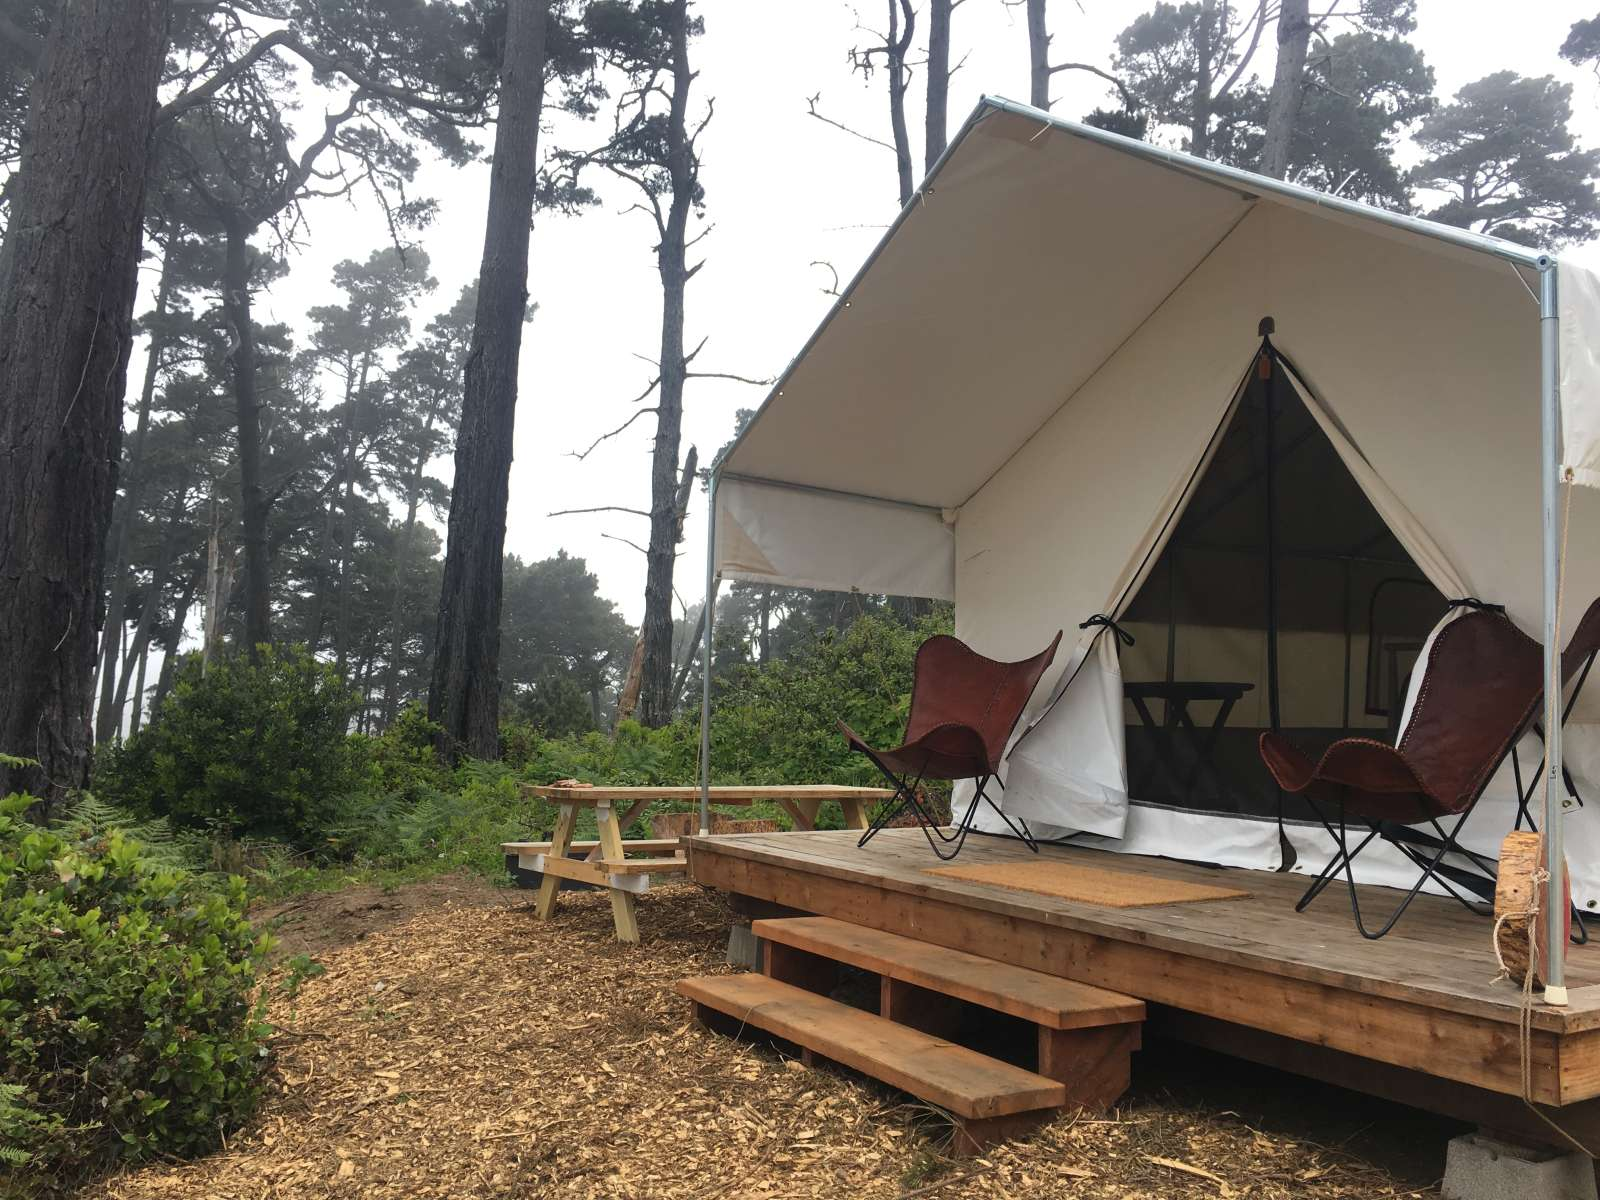 ... Alicia C.u0027s Photo At Modern Camping Mendocino: Classic ...